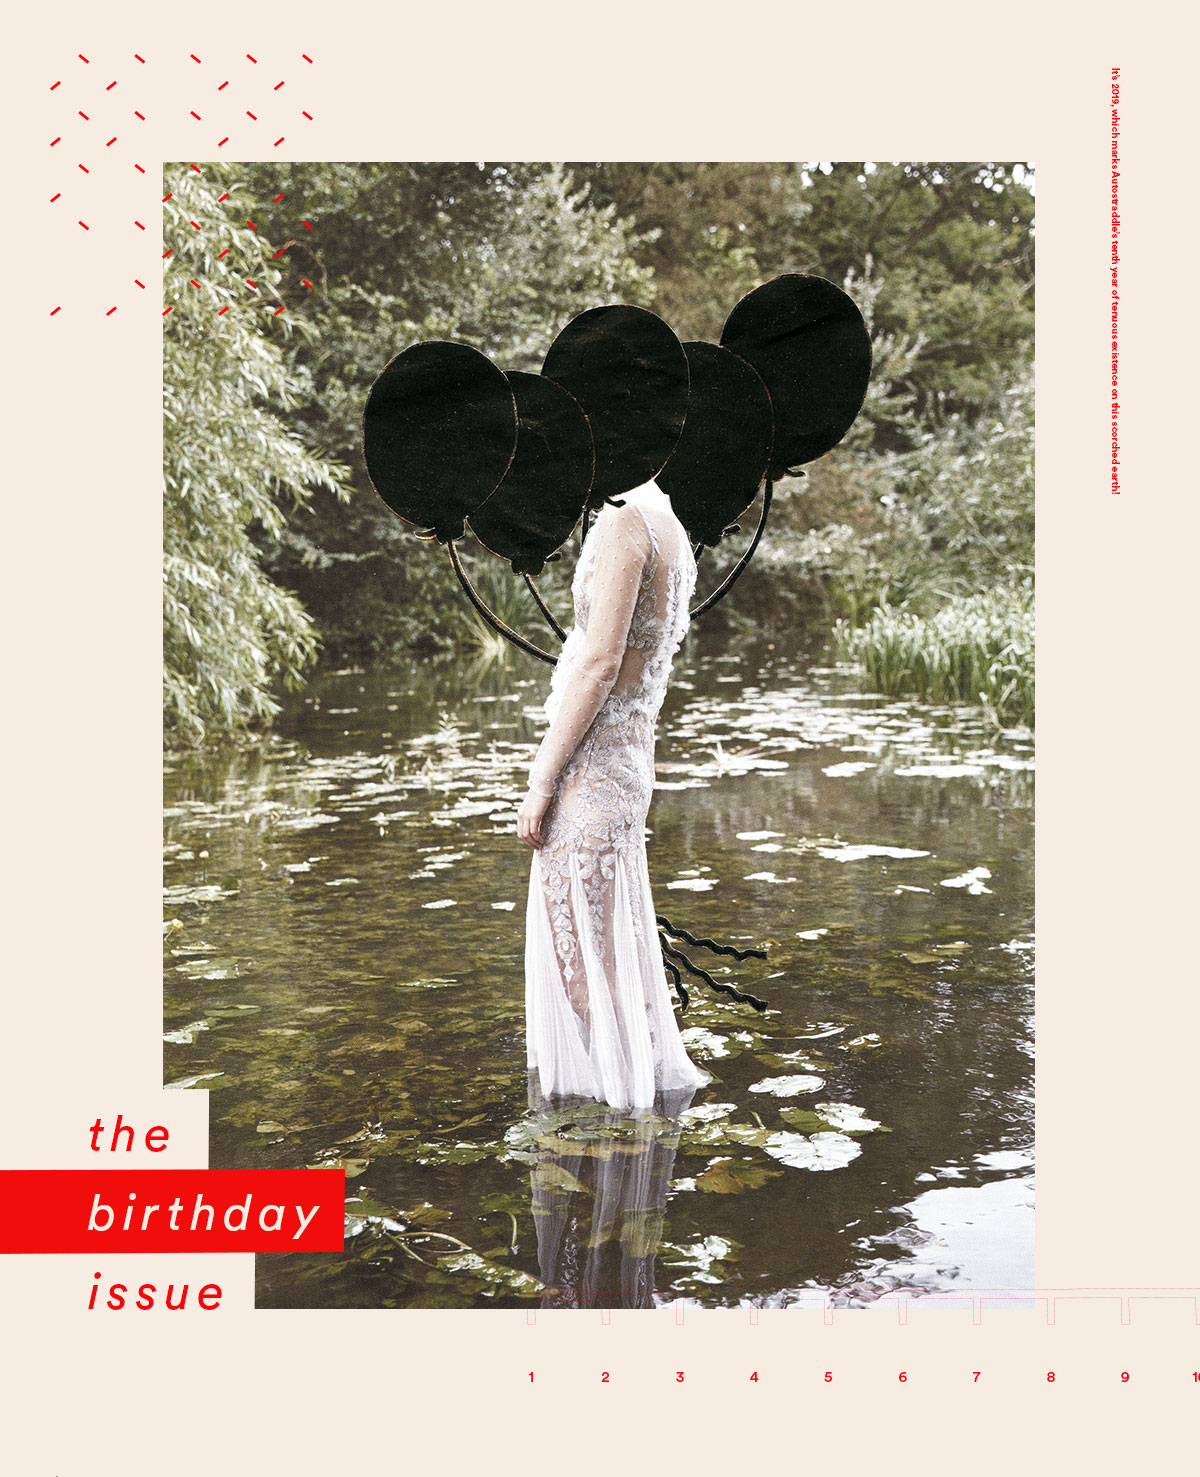 the birthday issue [graphic is a woman standing in the water, head is covered in black balloons]